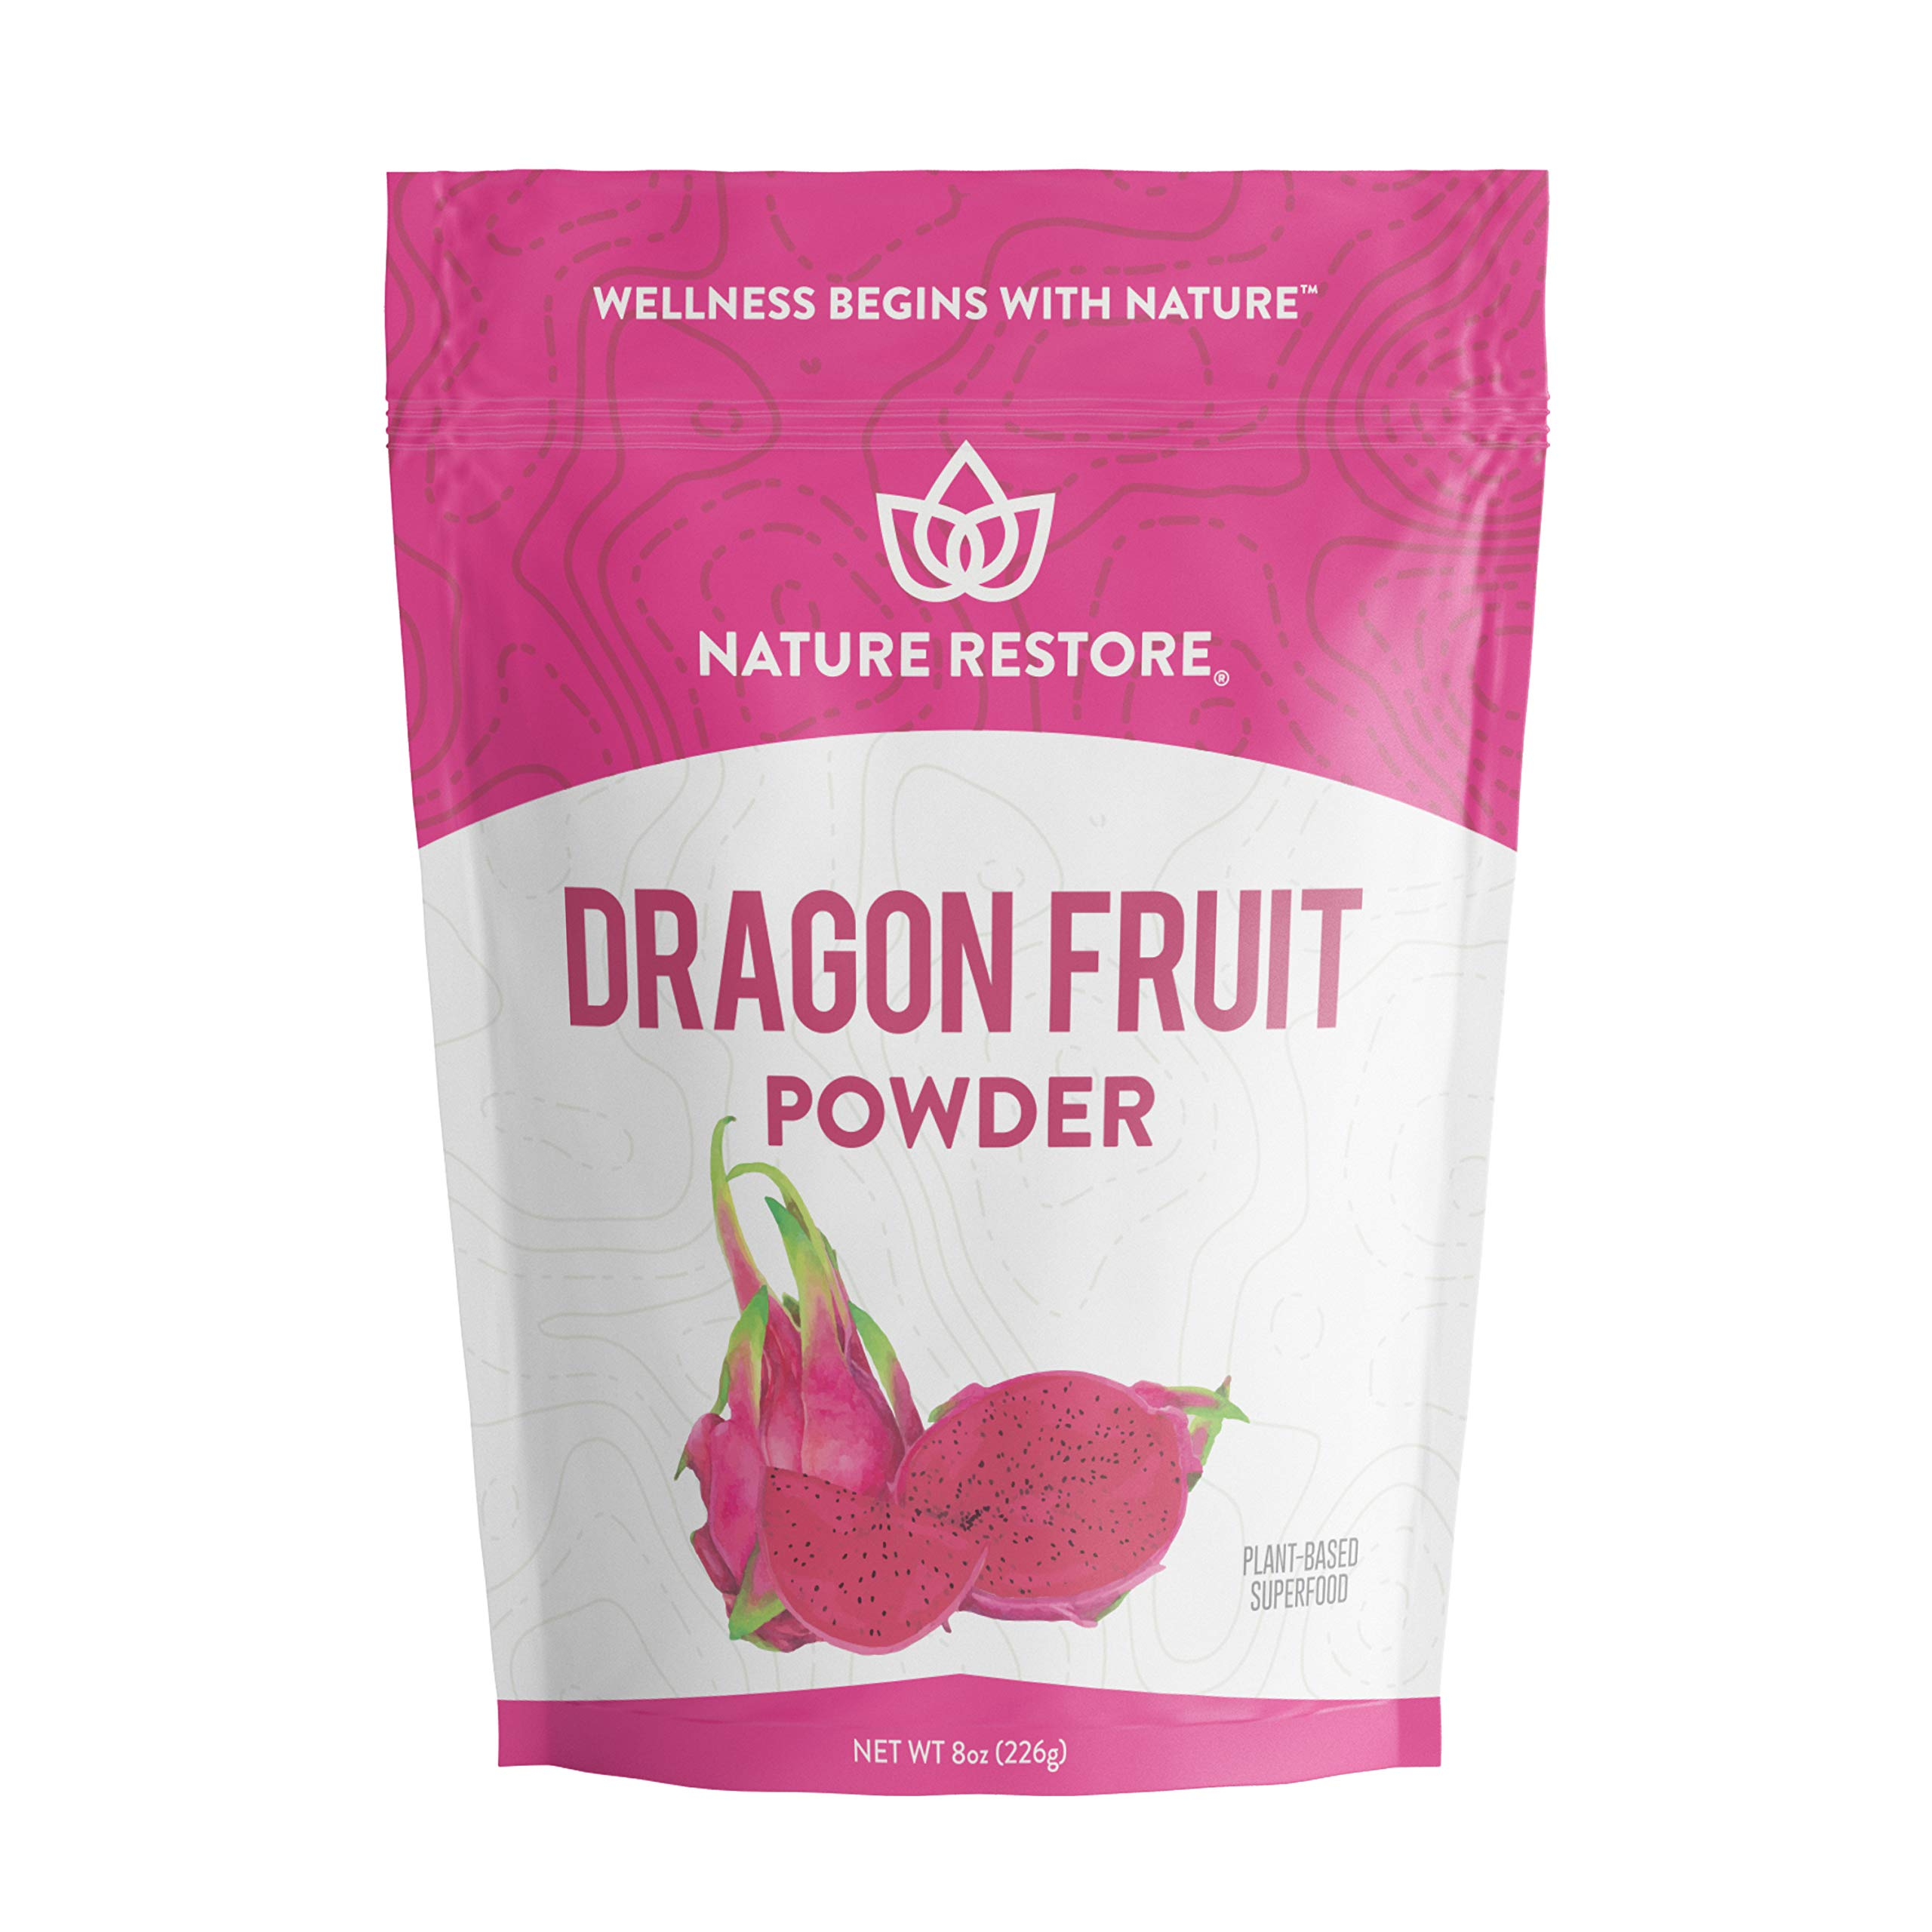 Pink Pitaya Powder, 8 Ounces, Non GMO, Gluten Free, Vegan, Packaged Locally in California by Nature Restore